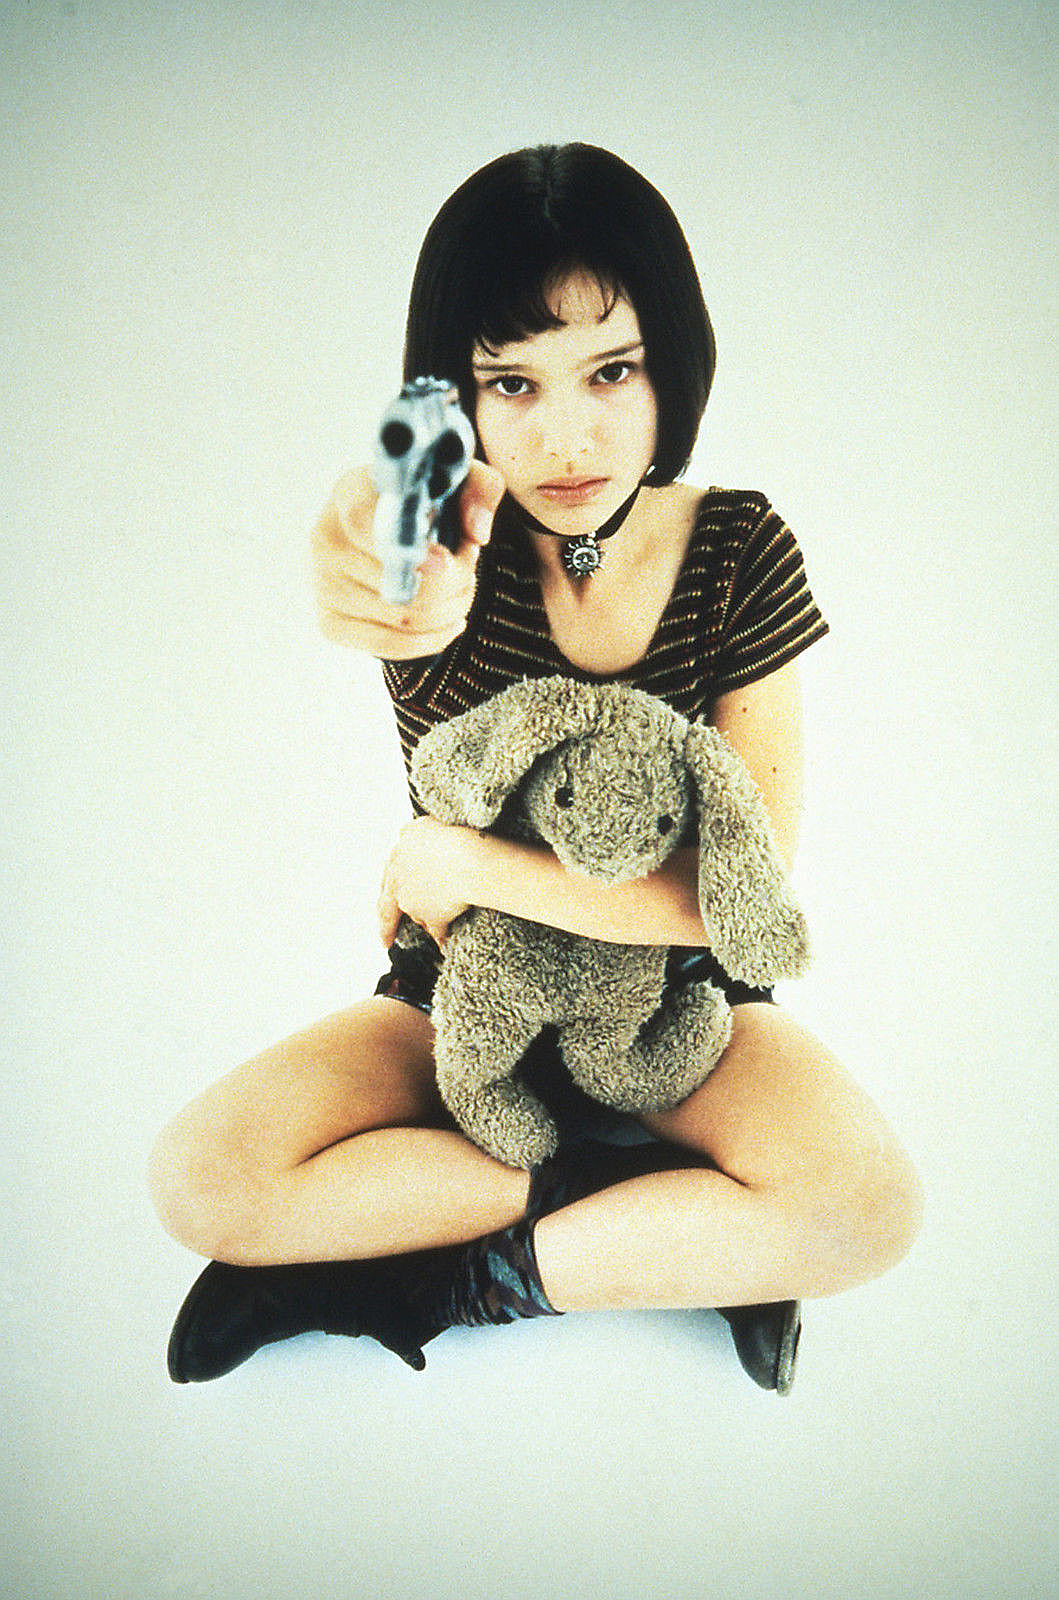 Leon the professional natalie portman gun all sizes